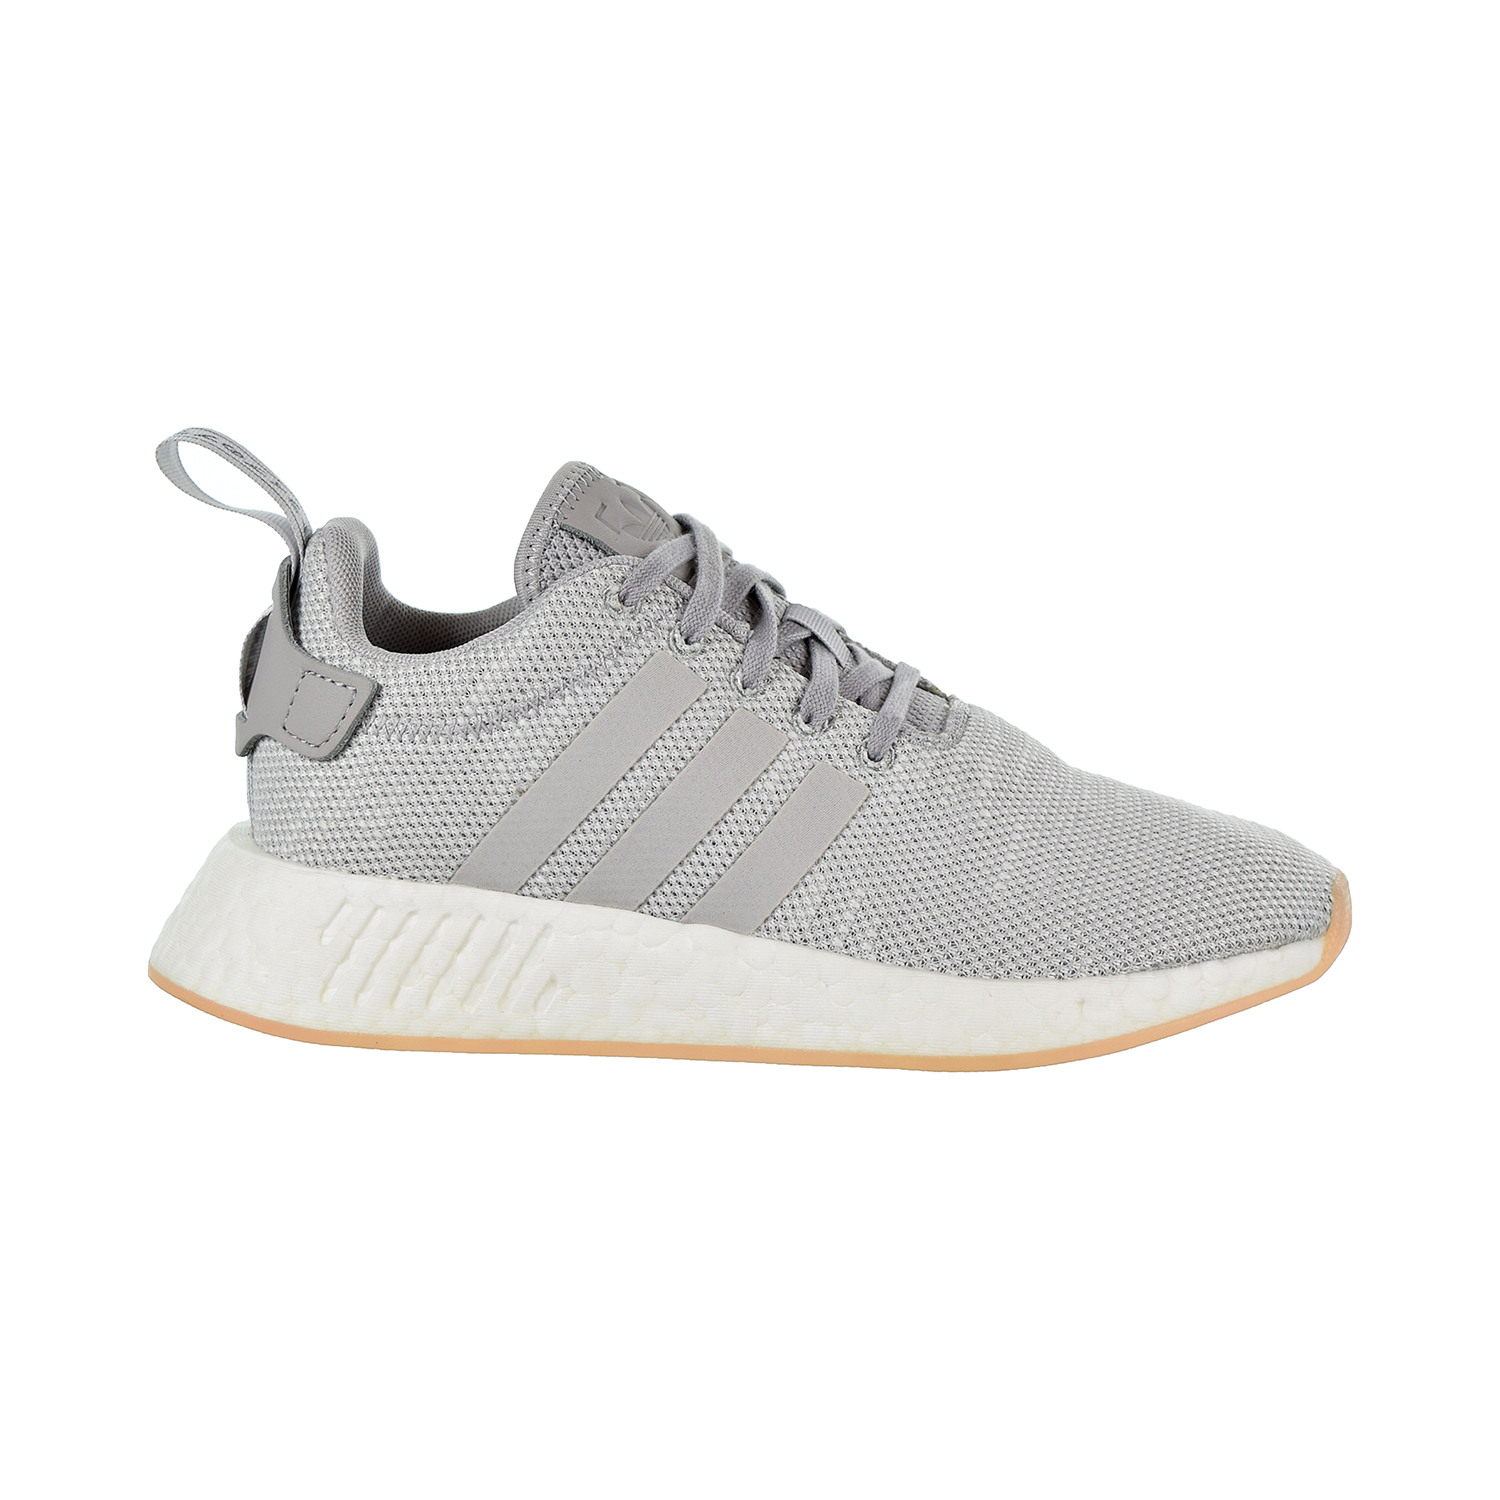 eb4a35cac48 Adidas Originals NMD R2 Women s Shoes Grey Crystal White aq0196